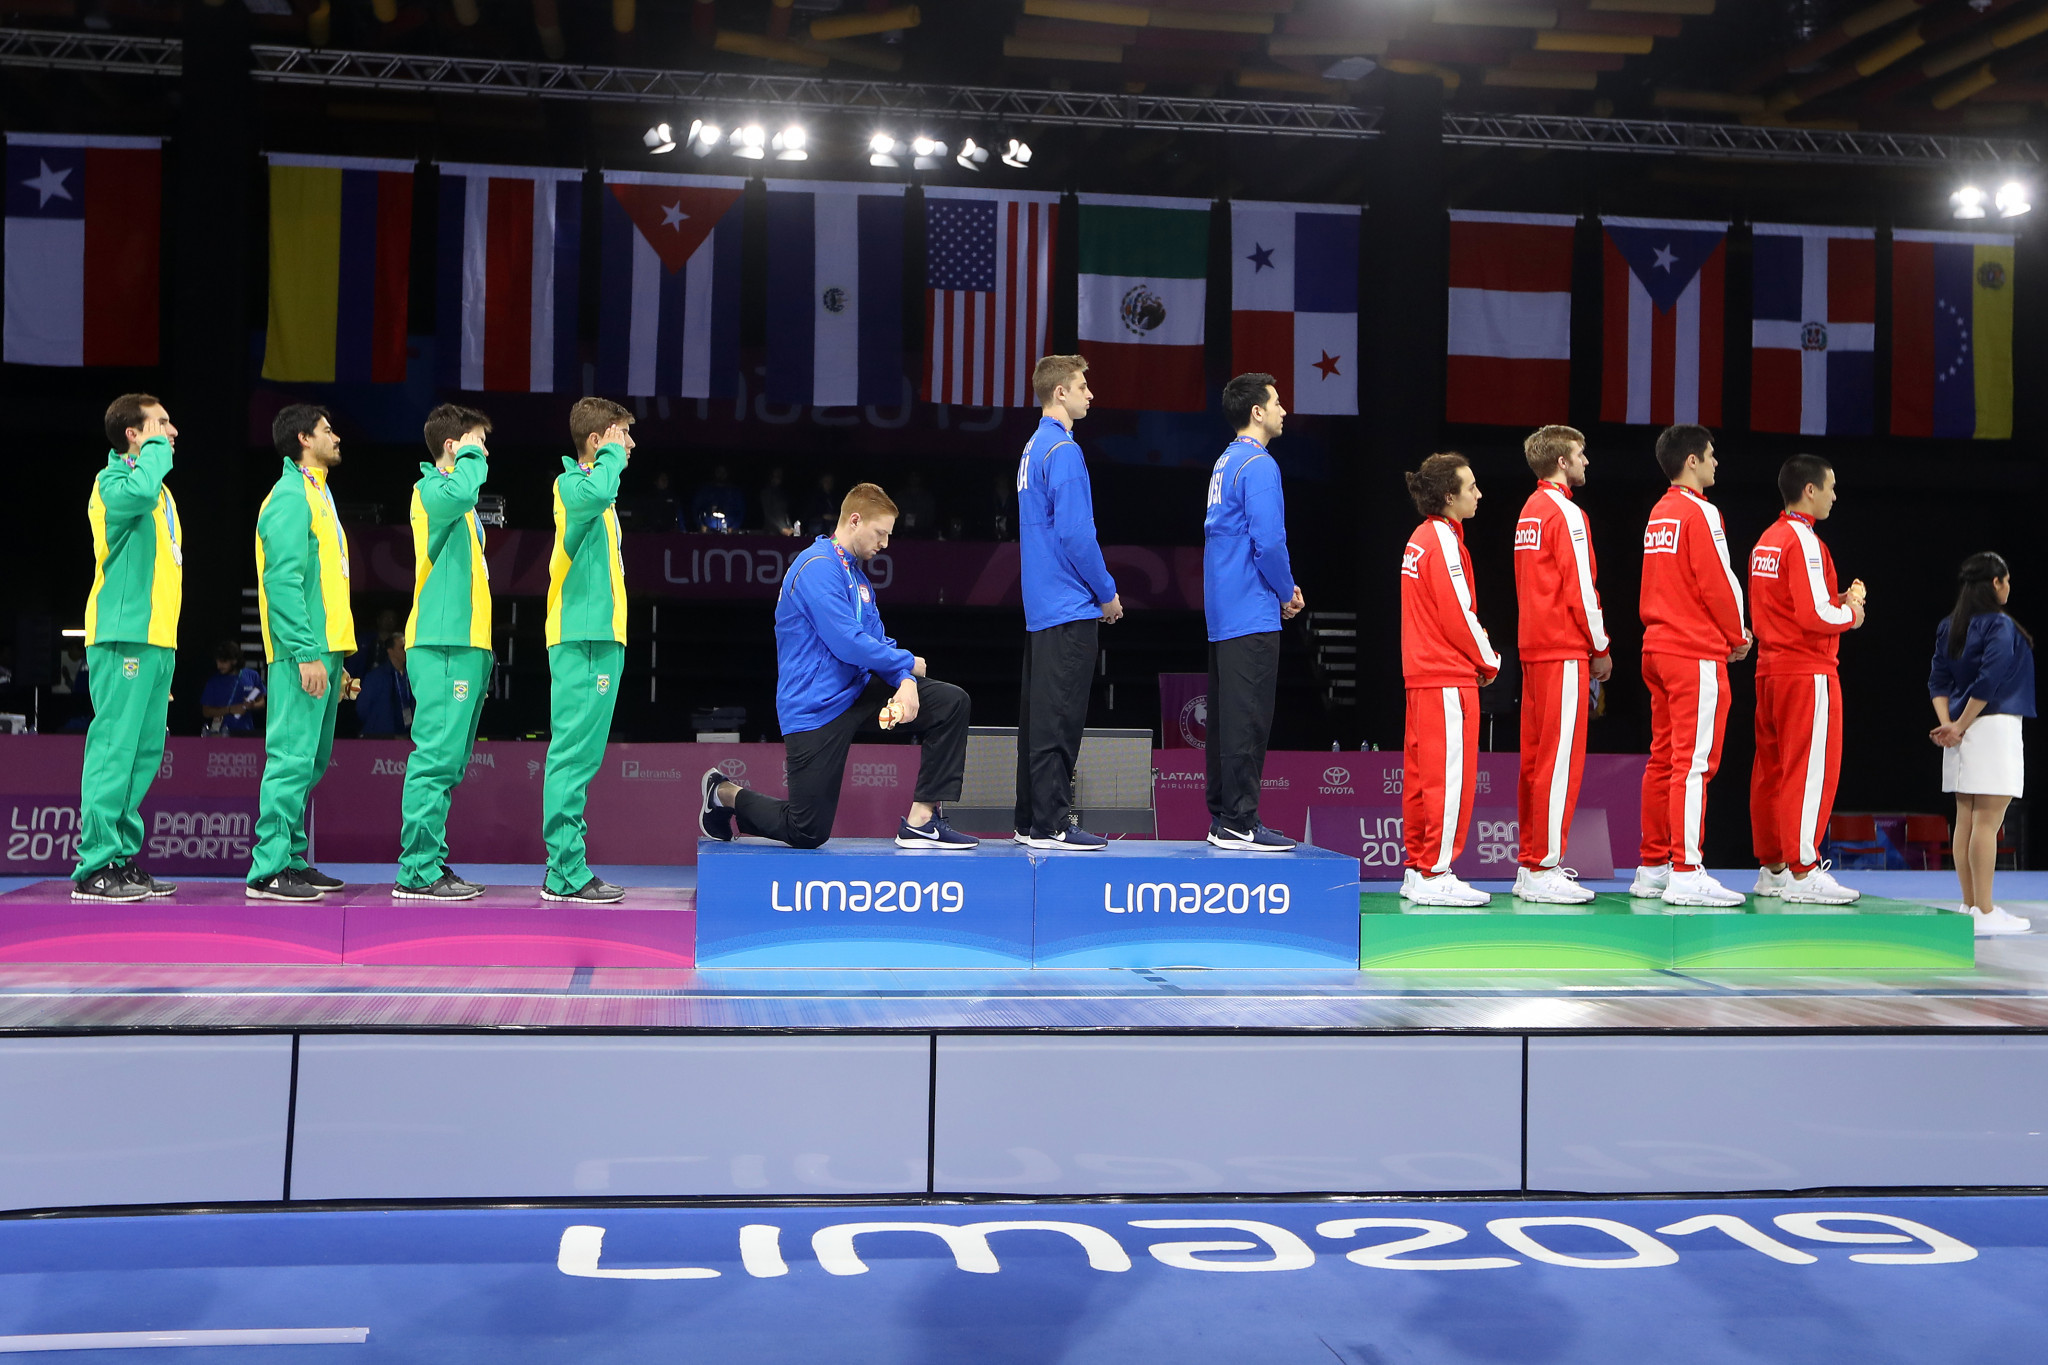 Race Imboden protested on the podium during the 2019 Pan American Games in Lima ©Getty Images